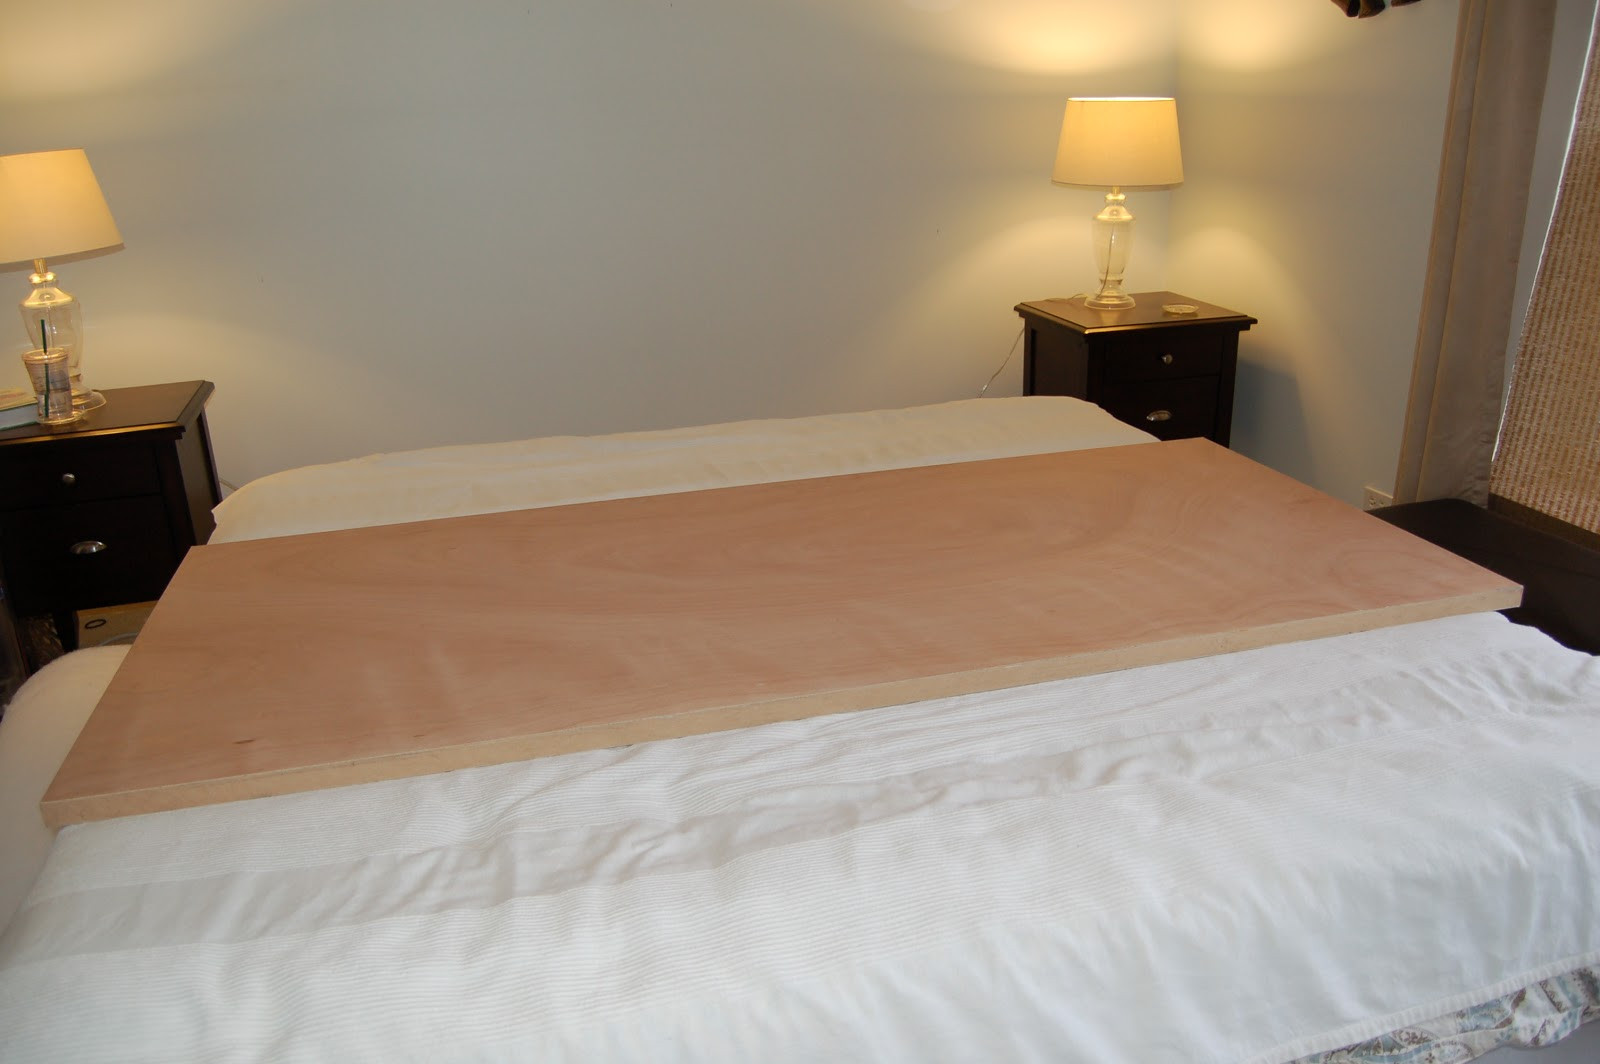 Best ideas about DIY King Beds . Save or Pin Domestic Observances DIY King Sized Headboard Now.